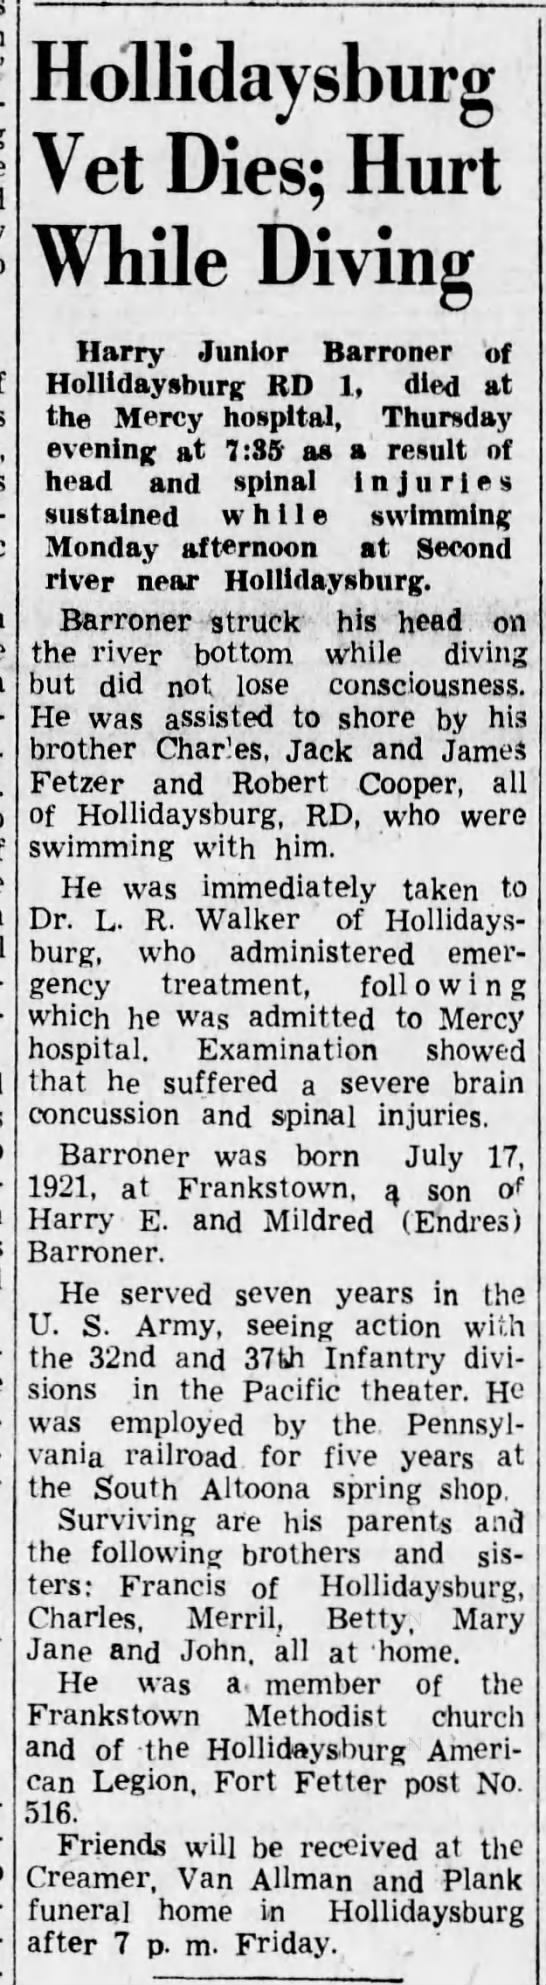 Harry Junior Barroner - Hollidaysburg Vet Dies; Hurt While Diving Harry...